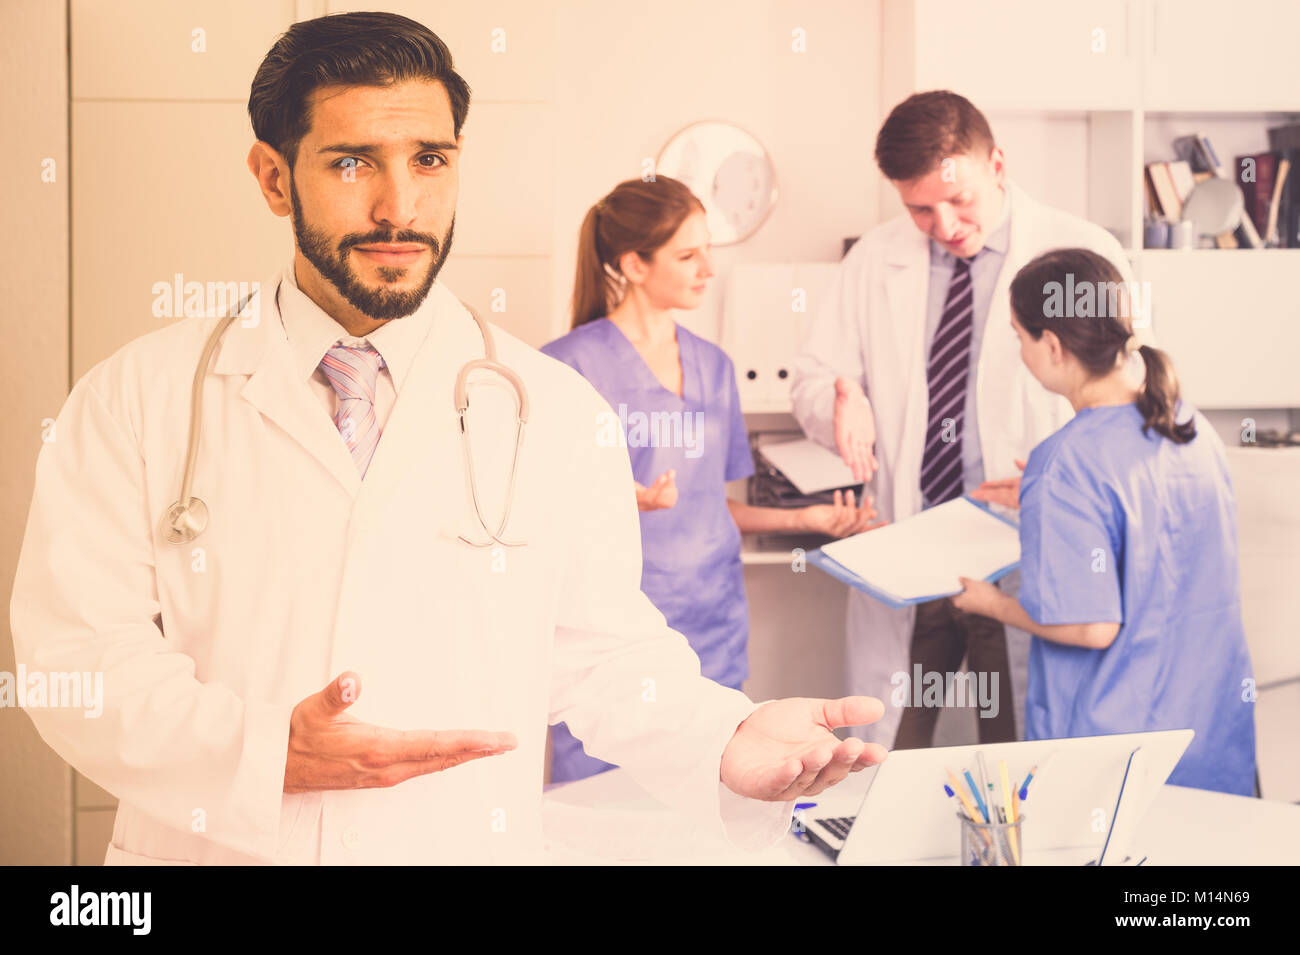 Bearded doctor making welcome gesture, politely inviting patient in medical office - Stock Image